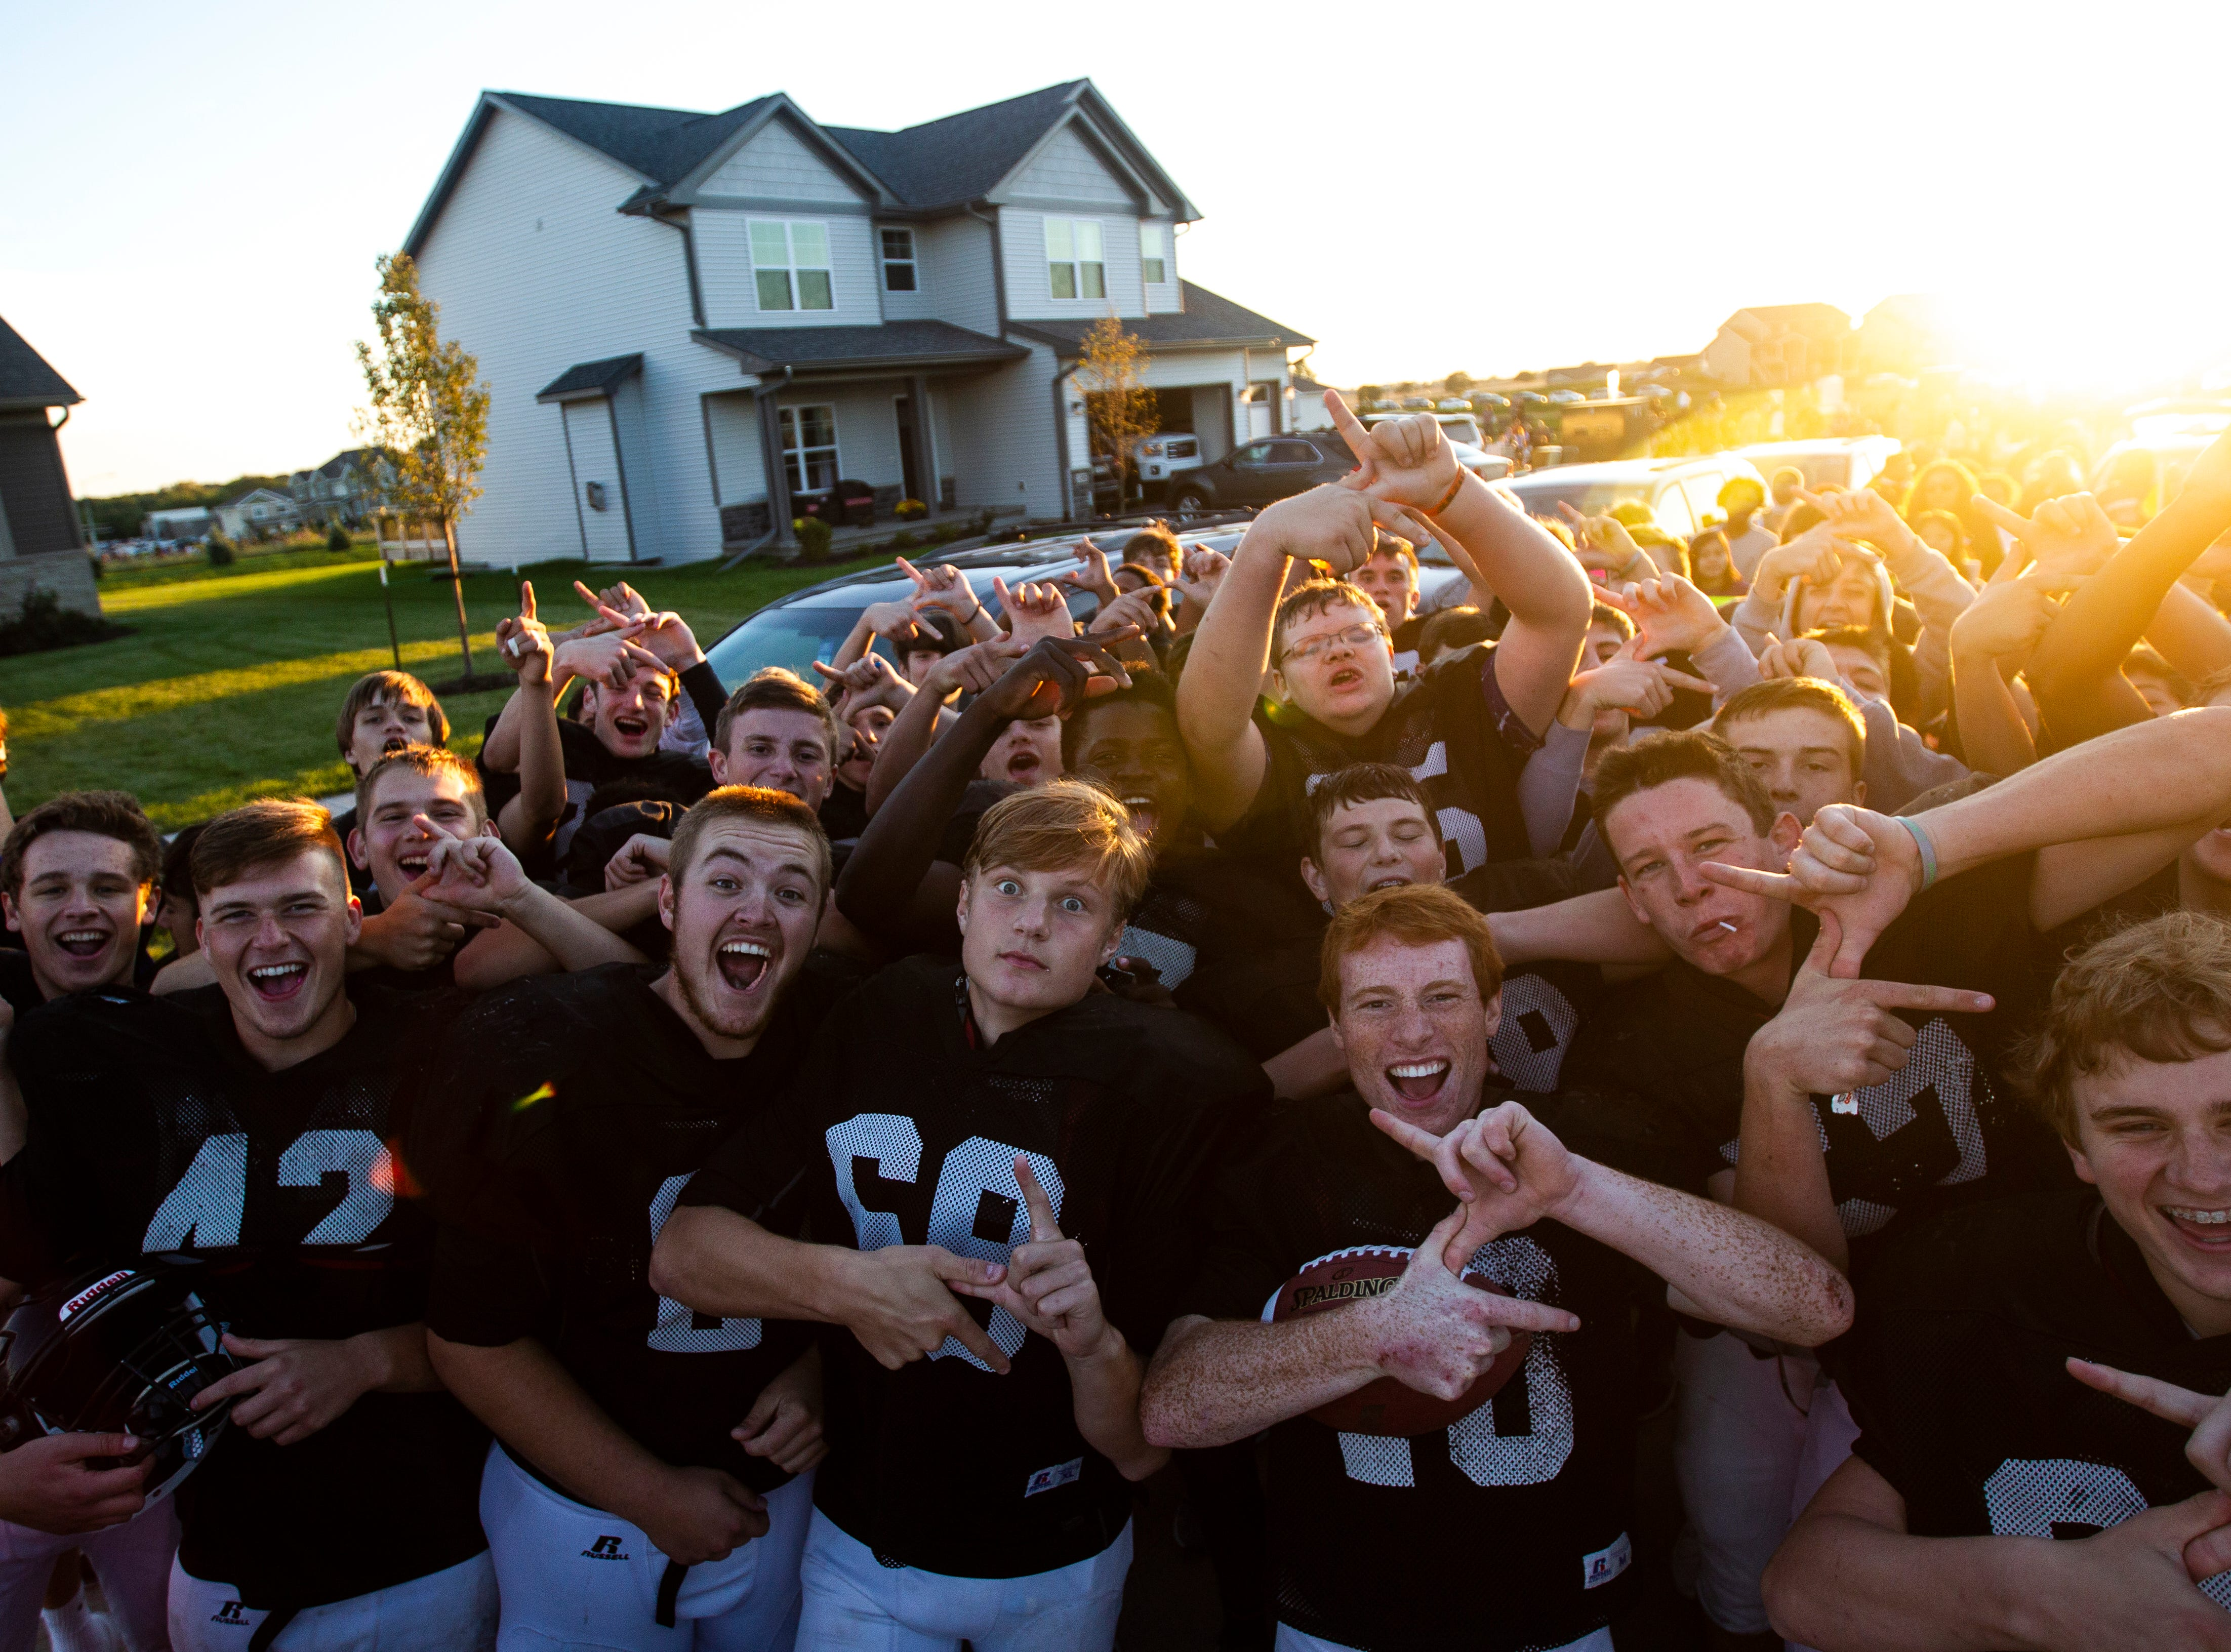 Members of the varsity football team pose during Liberty's homecoming parade on Wednesday, Sept. 26, 2018, in North Liberty, Iowa.